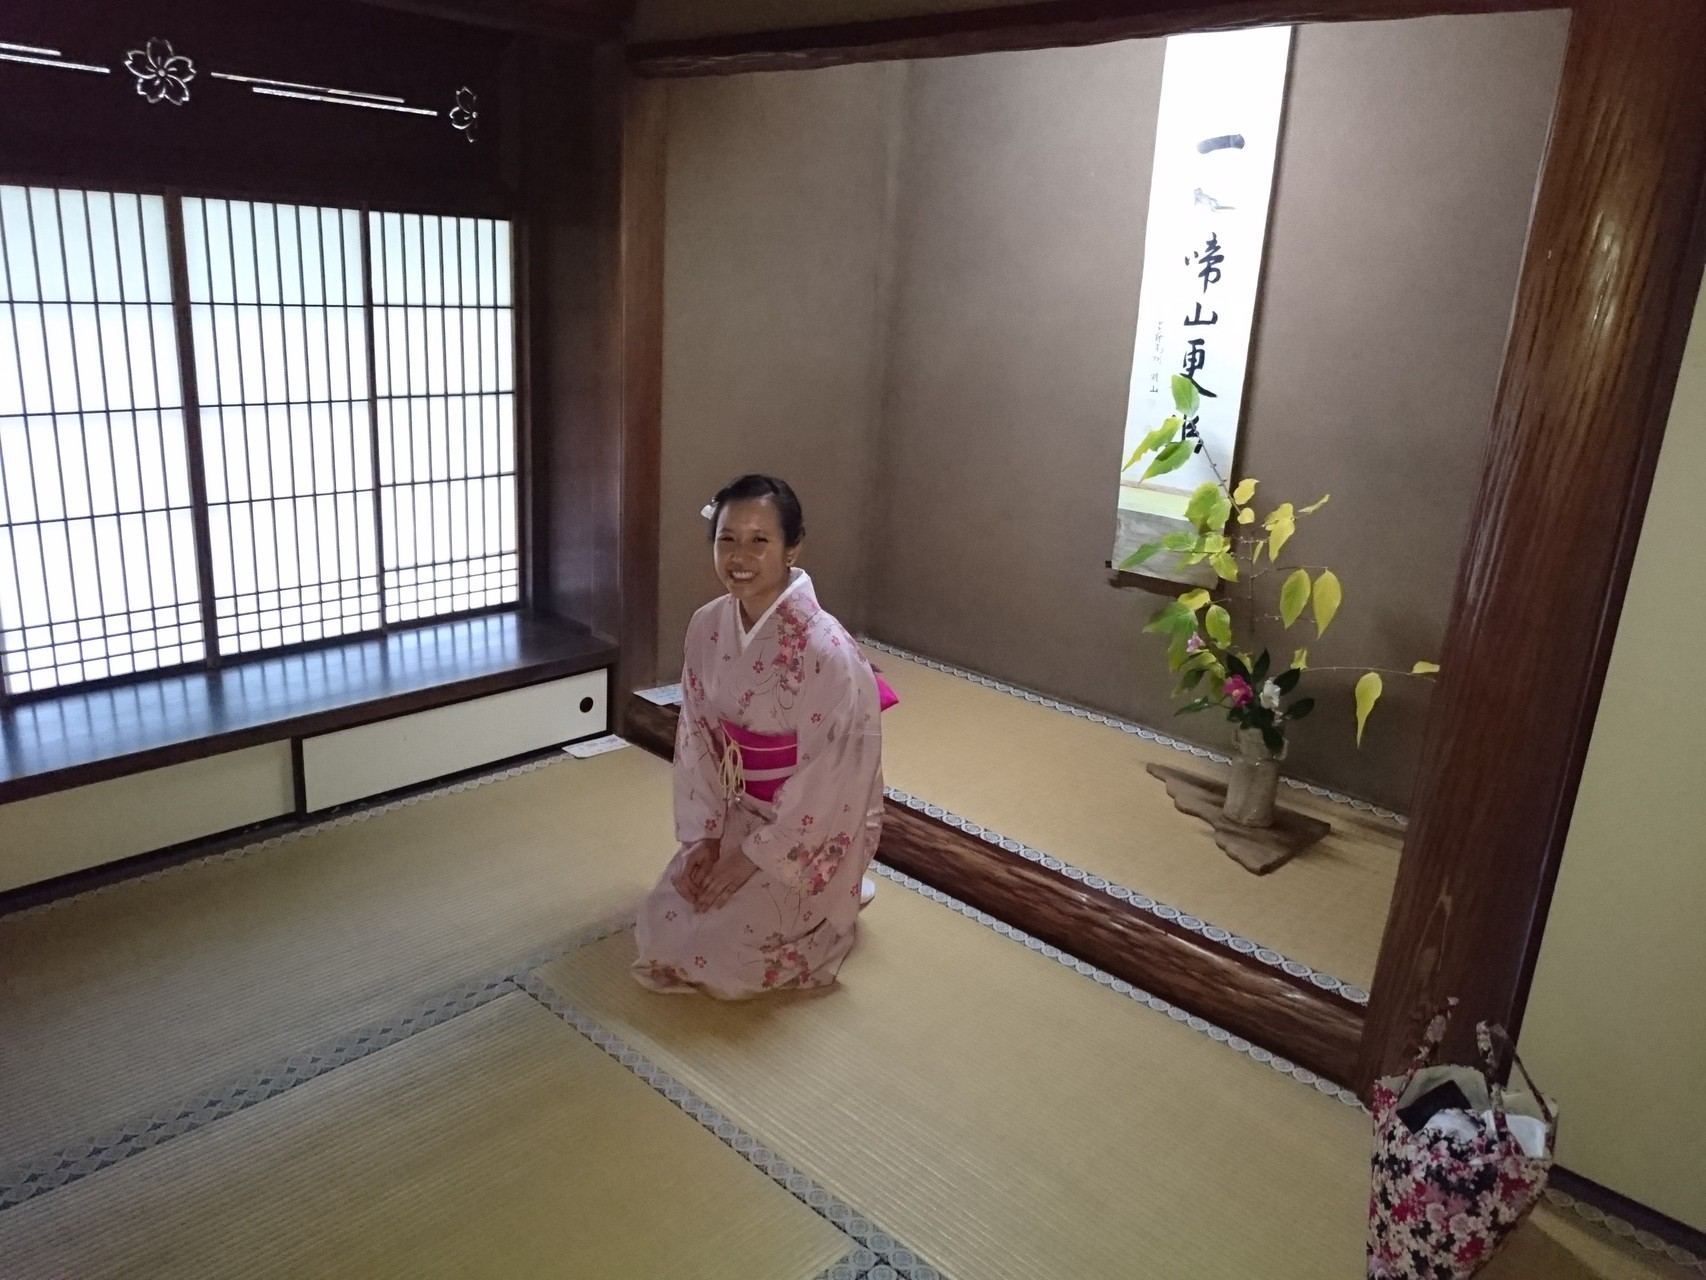 Tea‐ceremony room